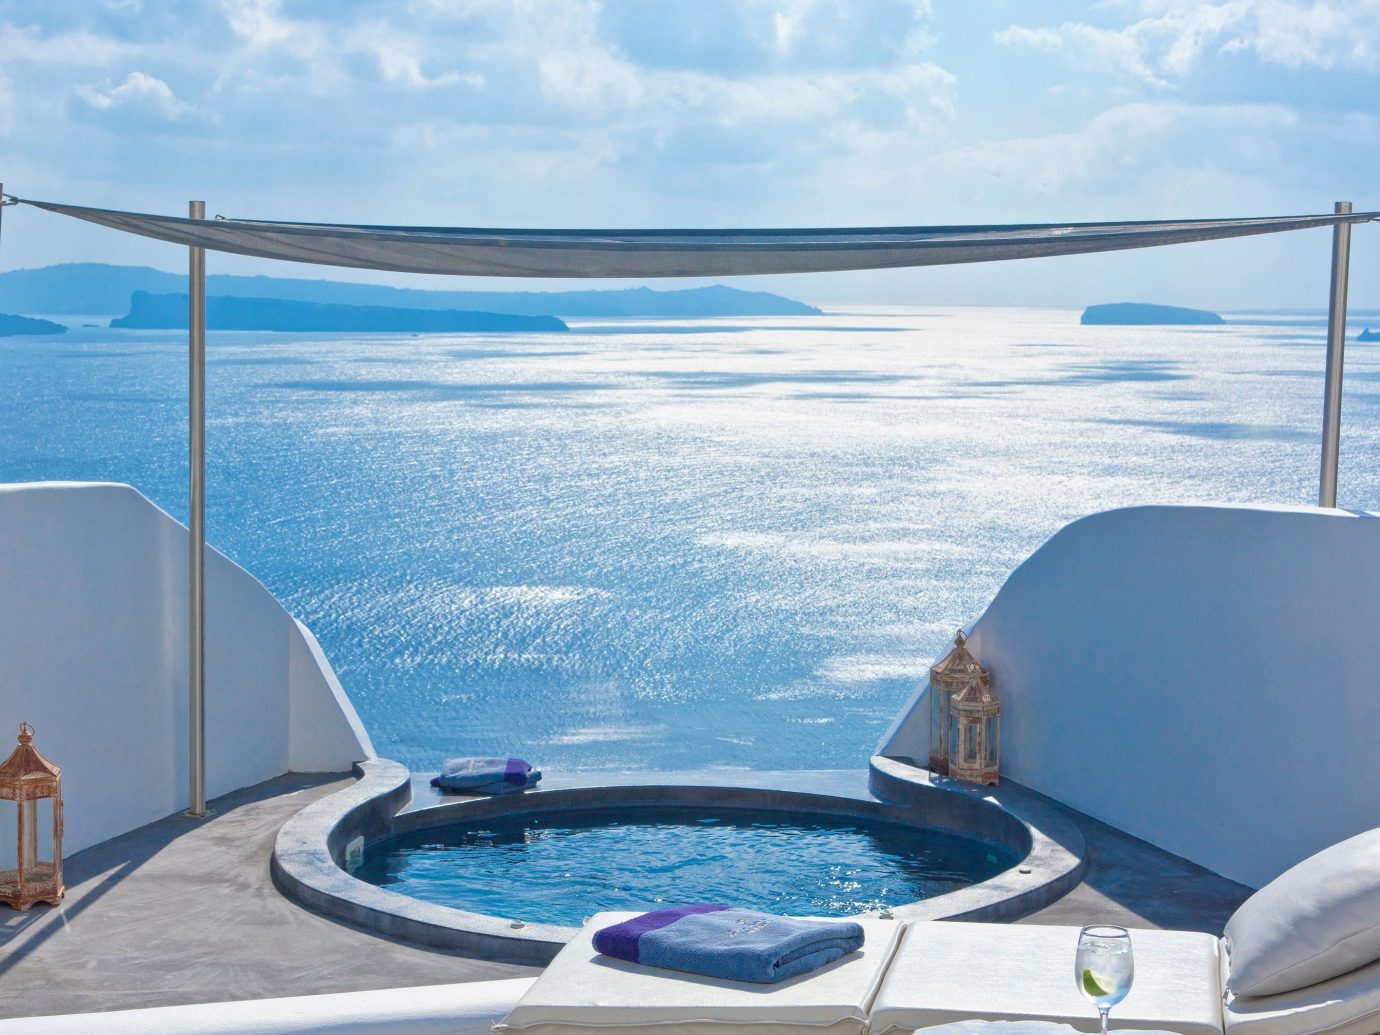 Hotels Trip Ideas sky water outdoor swimming pool yacht vehicle vacation Boat overlooking Ocean passenger ship Sea bed caribbean jacuzzi Deck day